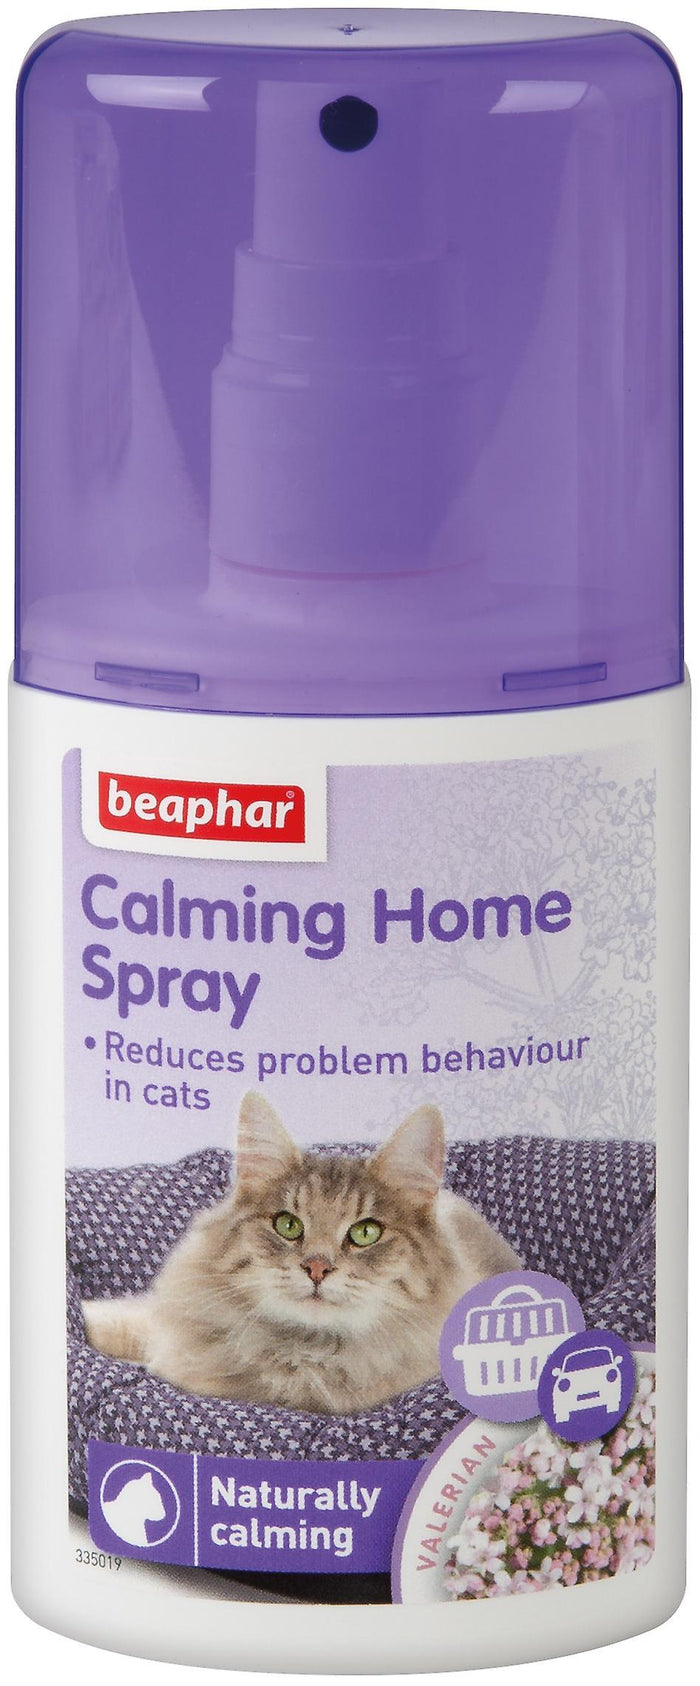 Beaphar Calming Home Spray 125ml